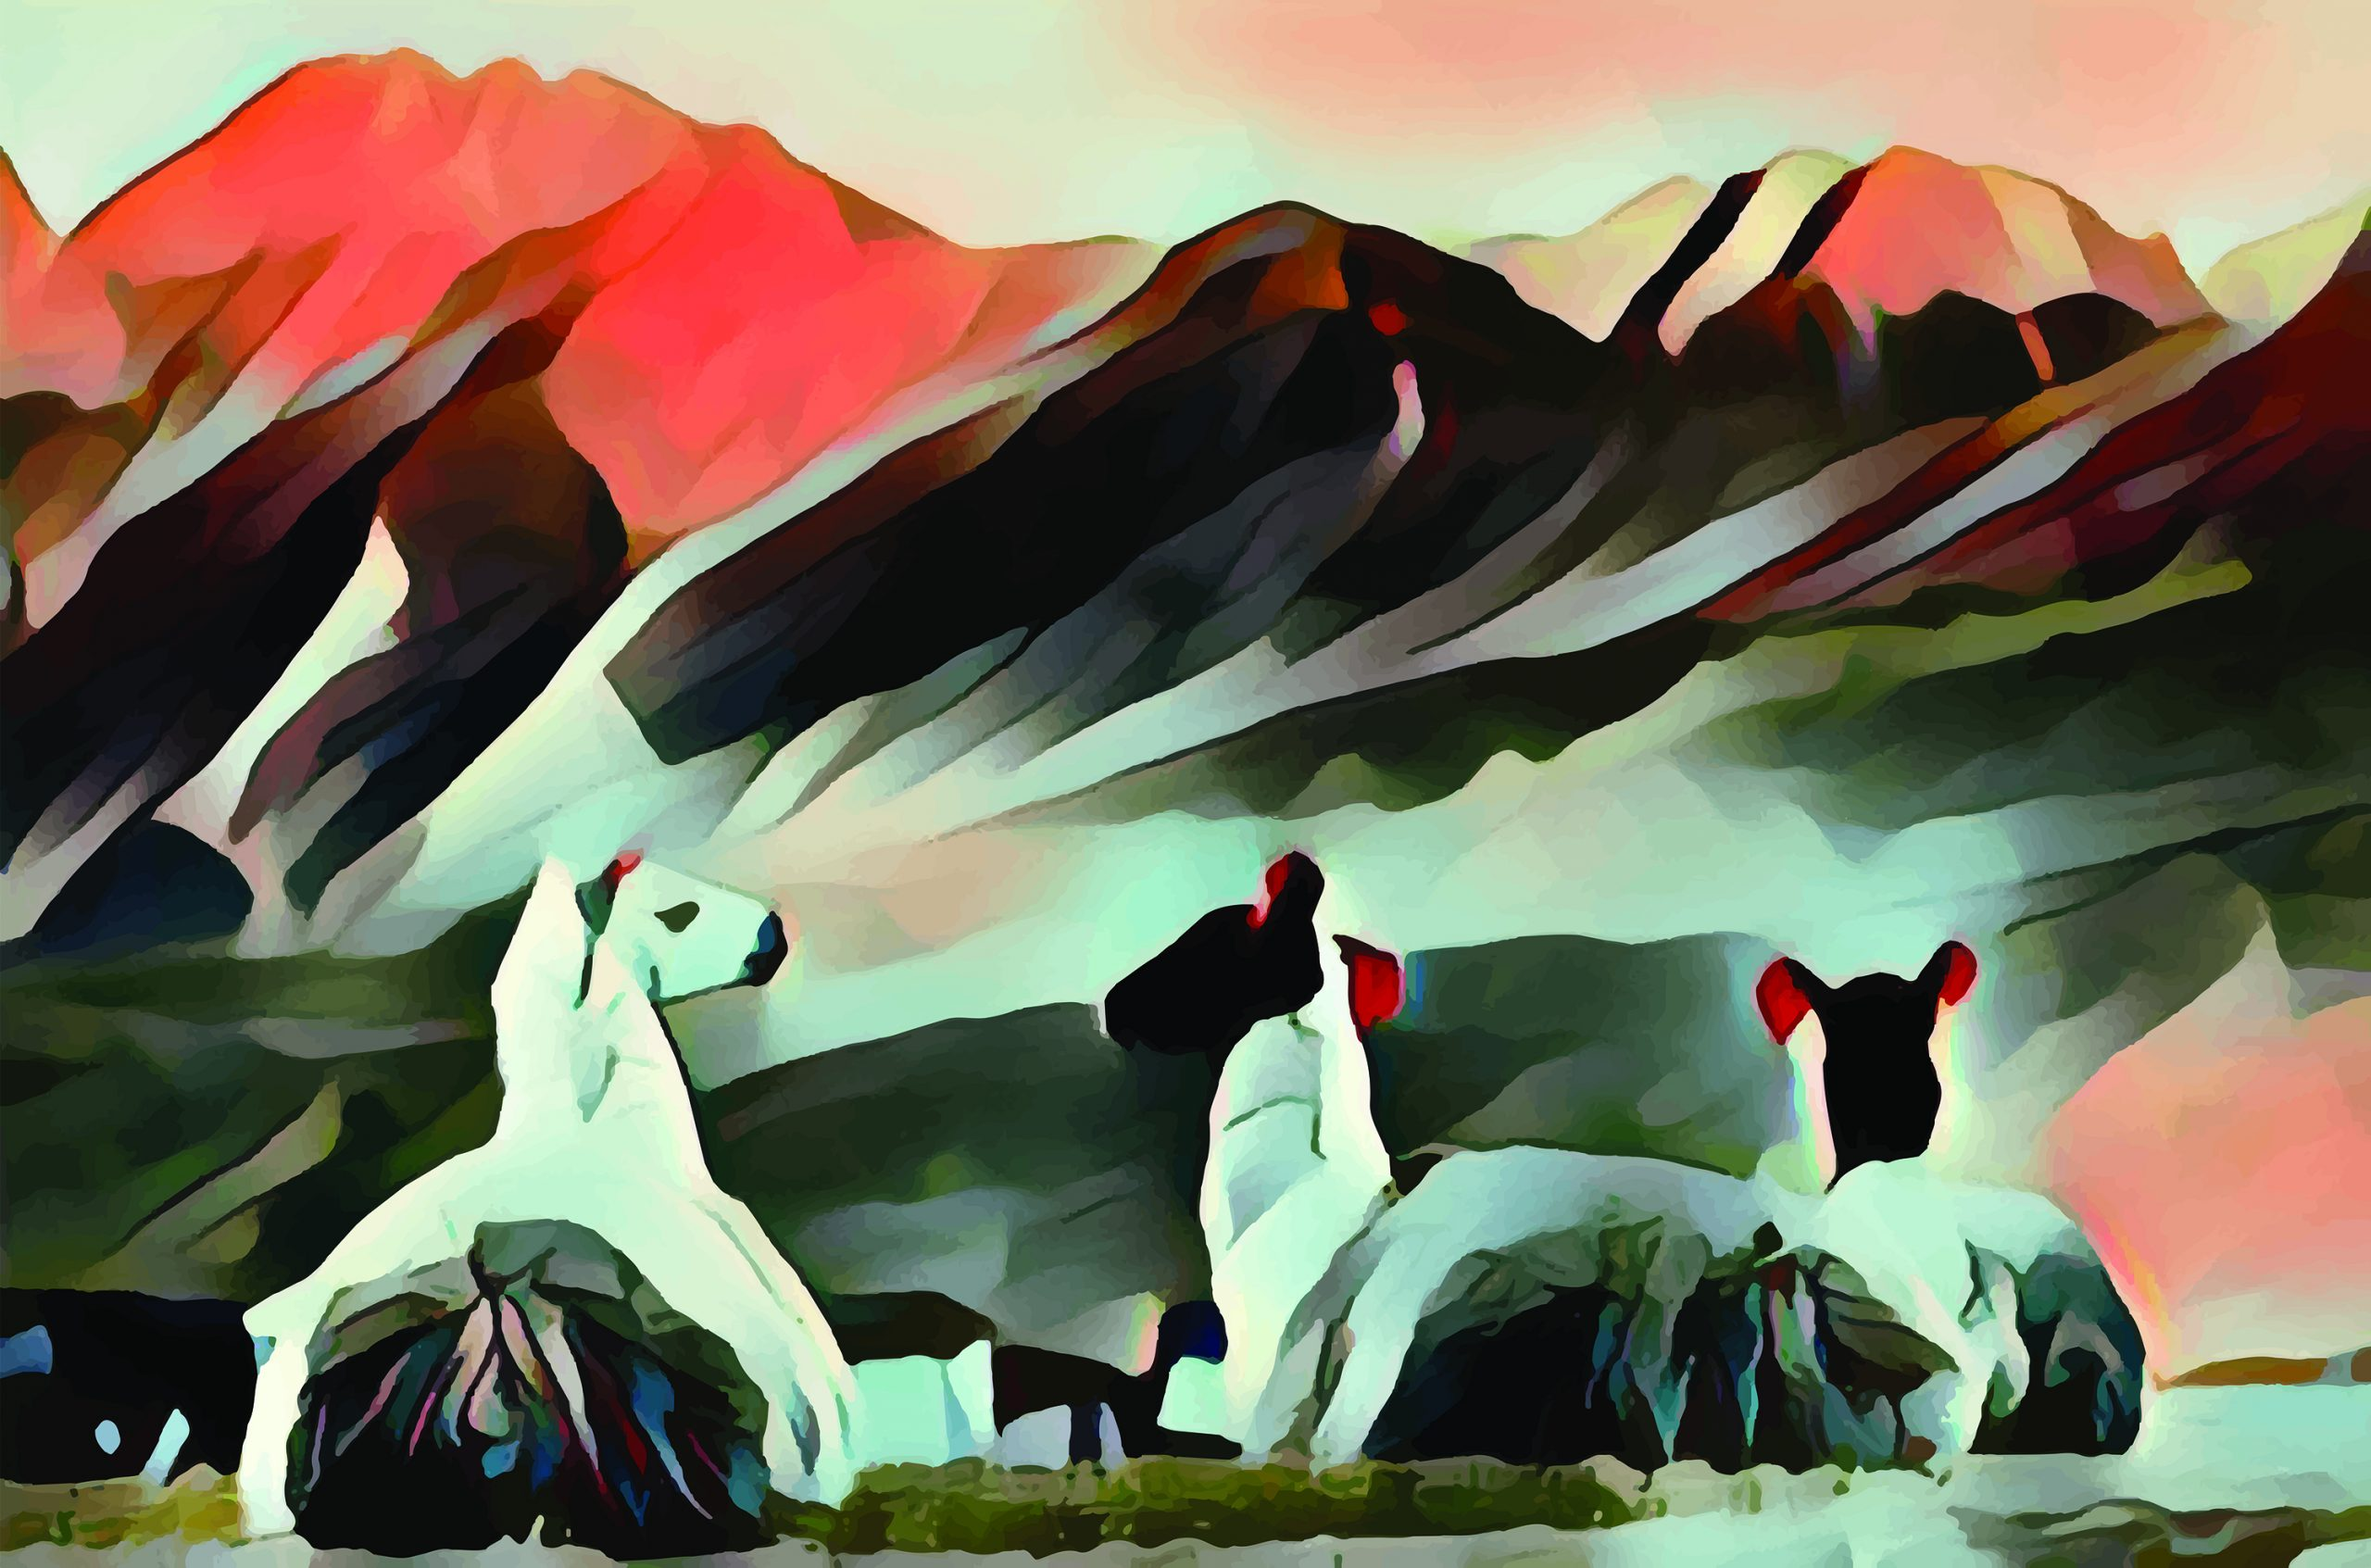 Stylized image in orange, black, and white of three llamas relaxing in front of mountains in the background.